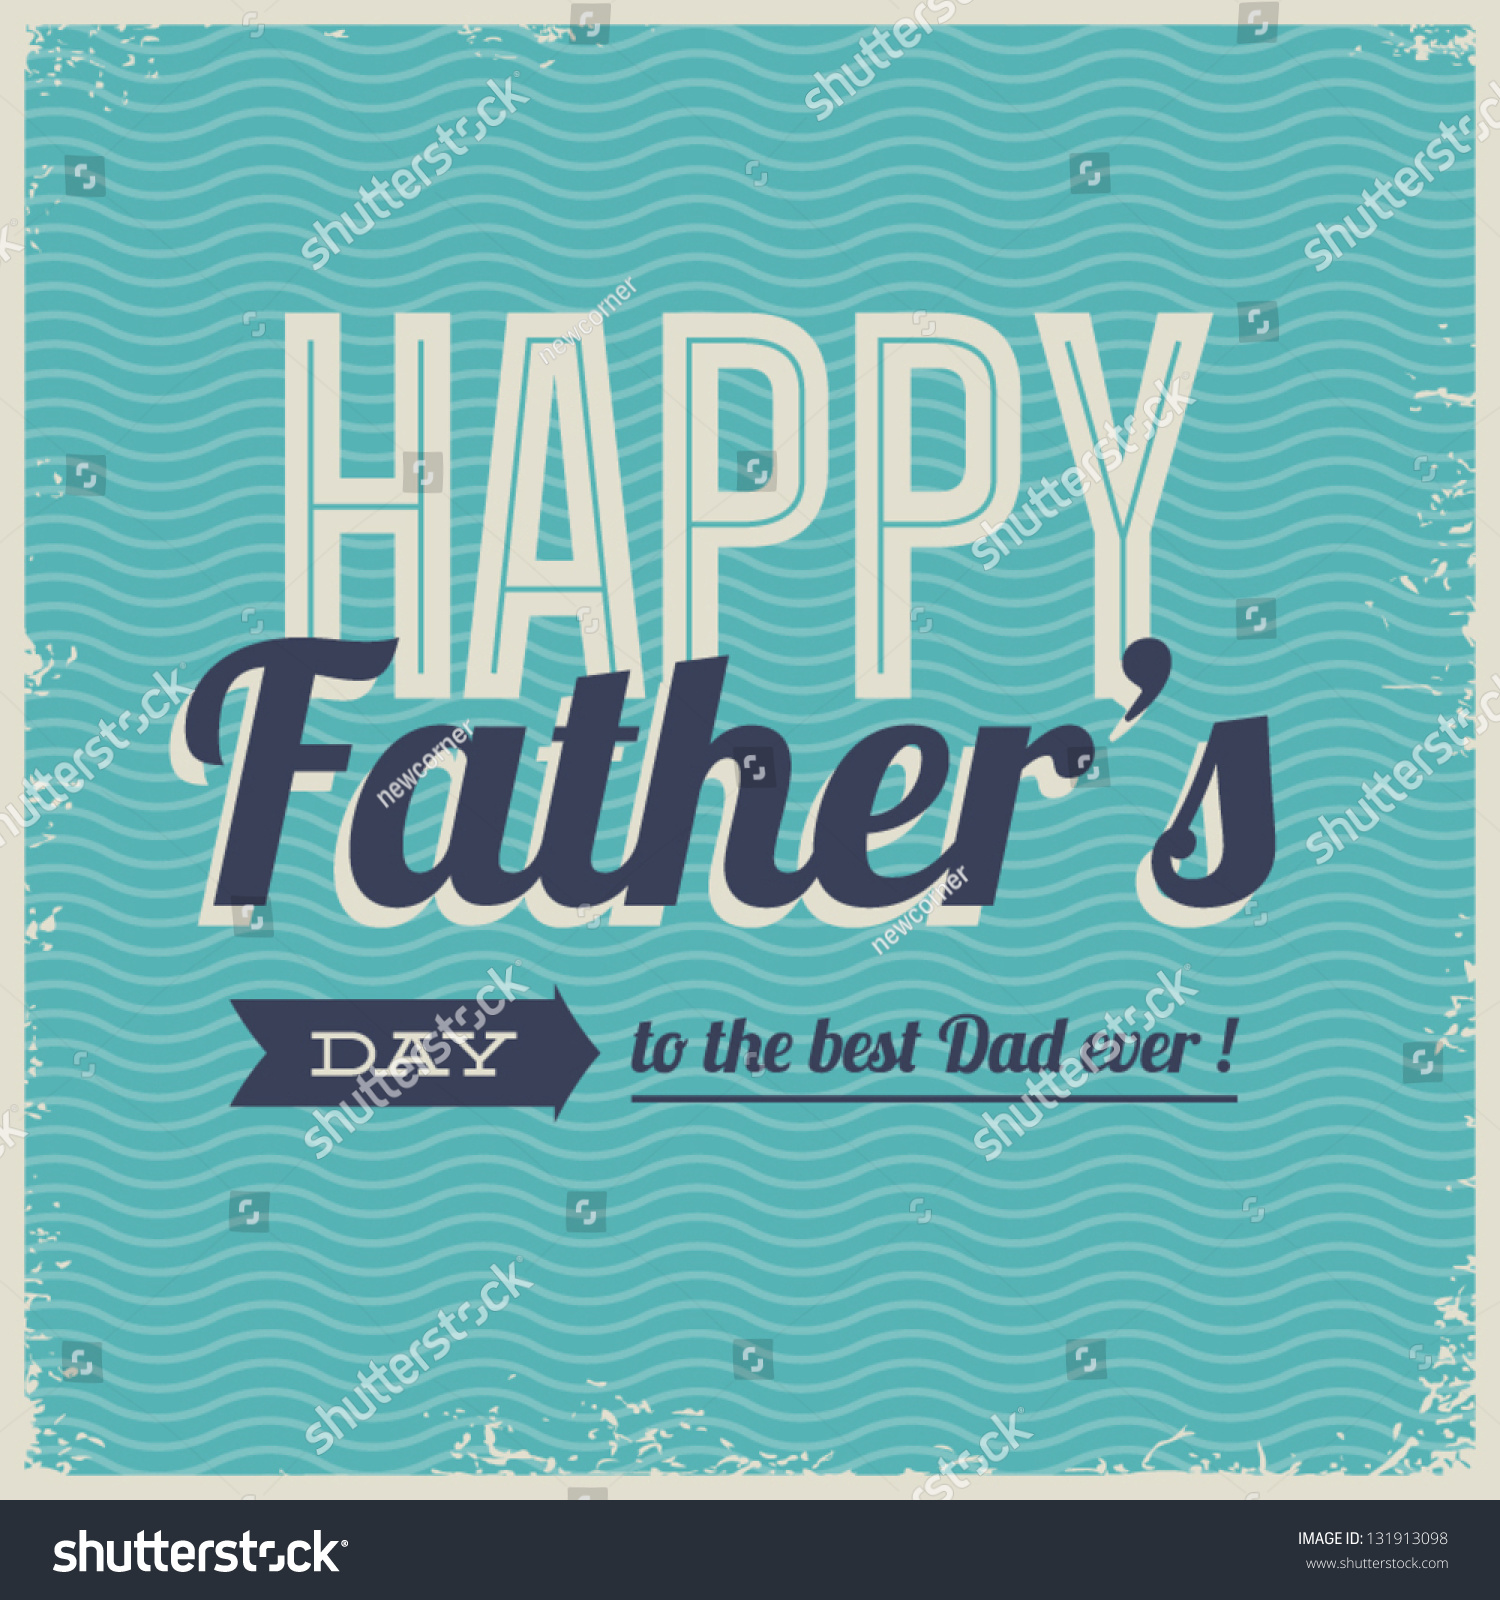 Lisa S Tool Time Father S Day Card: Happy Fathers Day Card Vintage Retro Type Font Stock